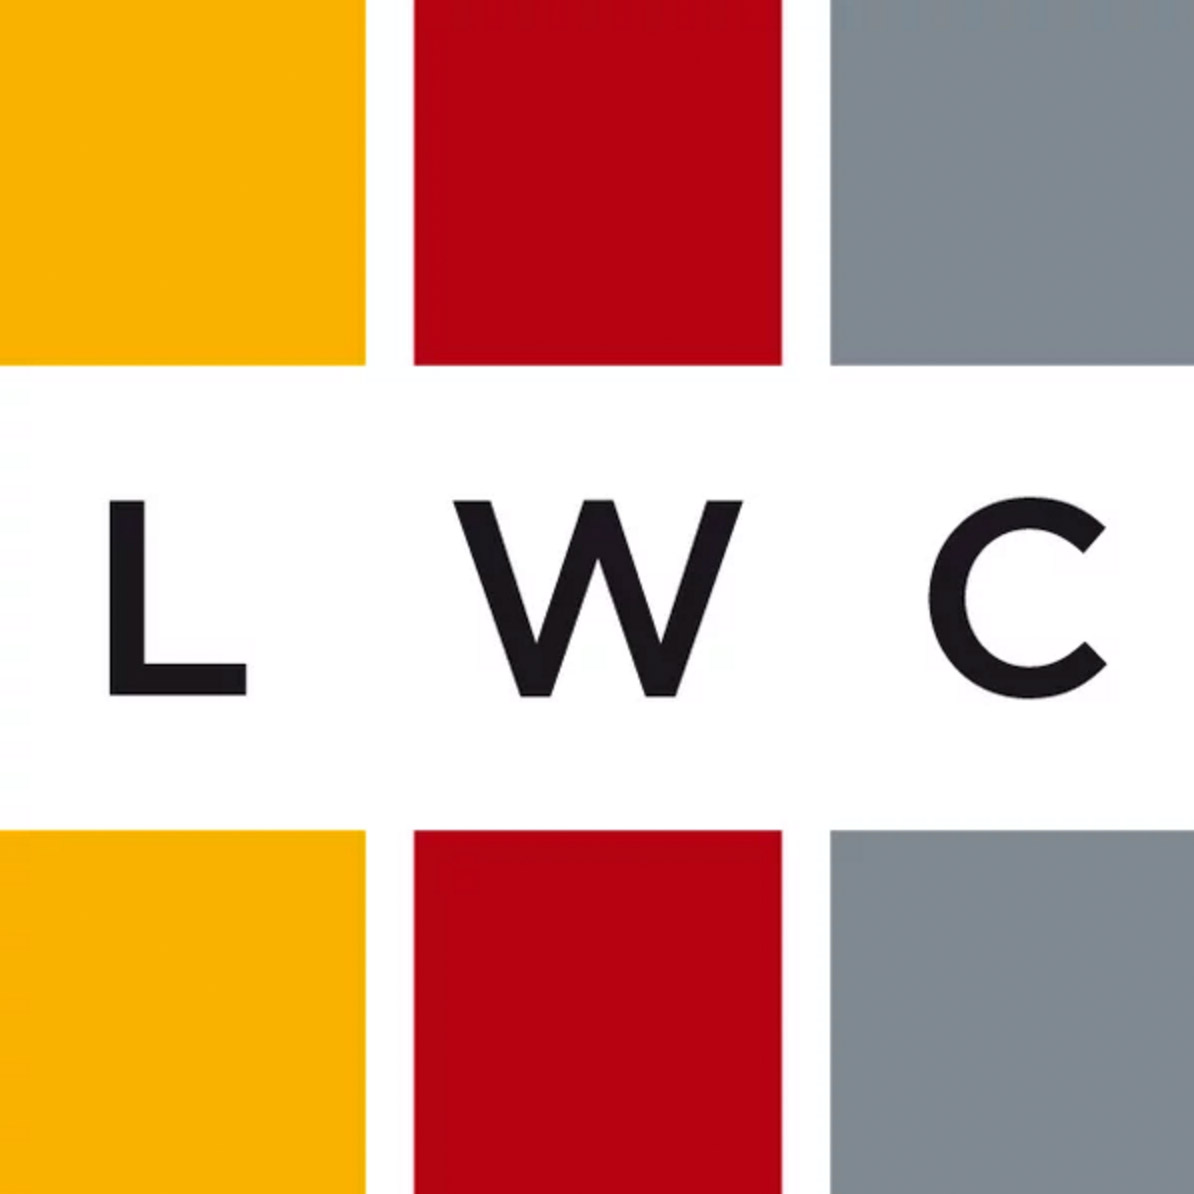 Lord Wandsworth College Logo